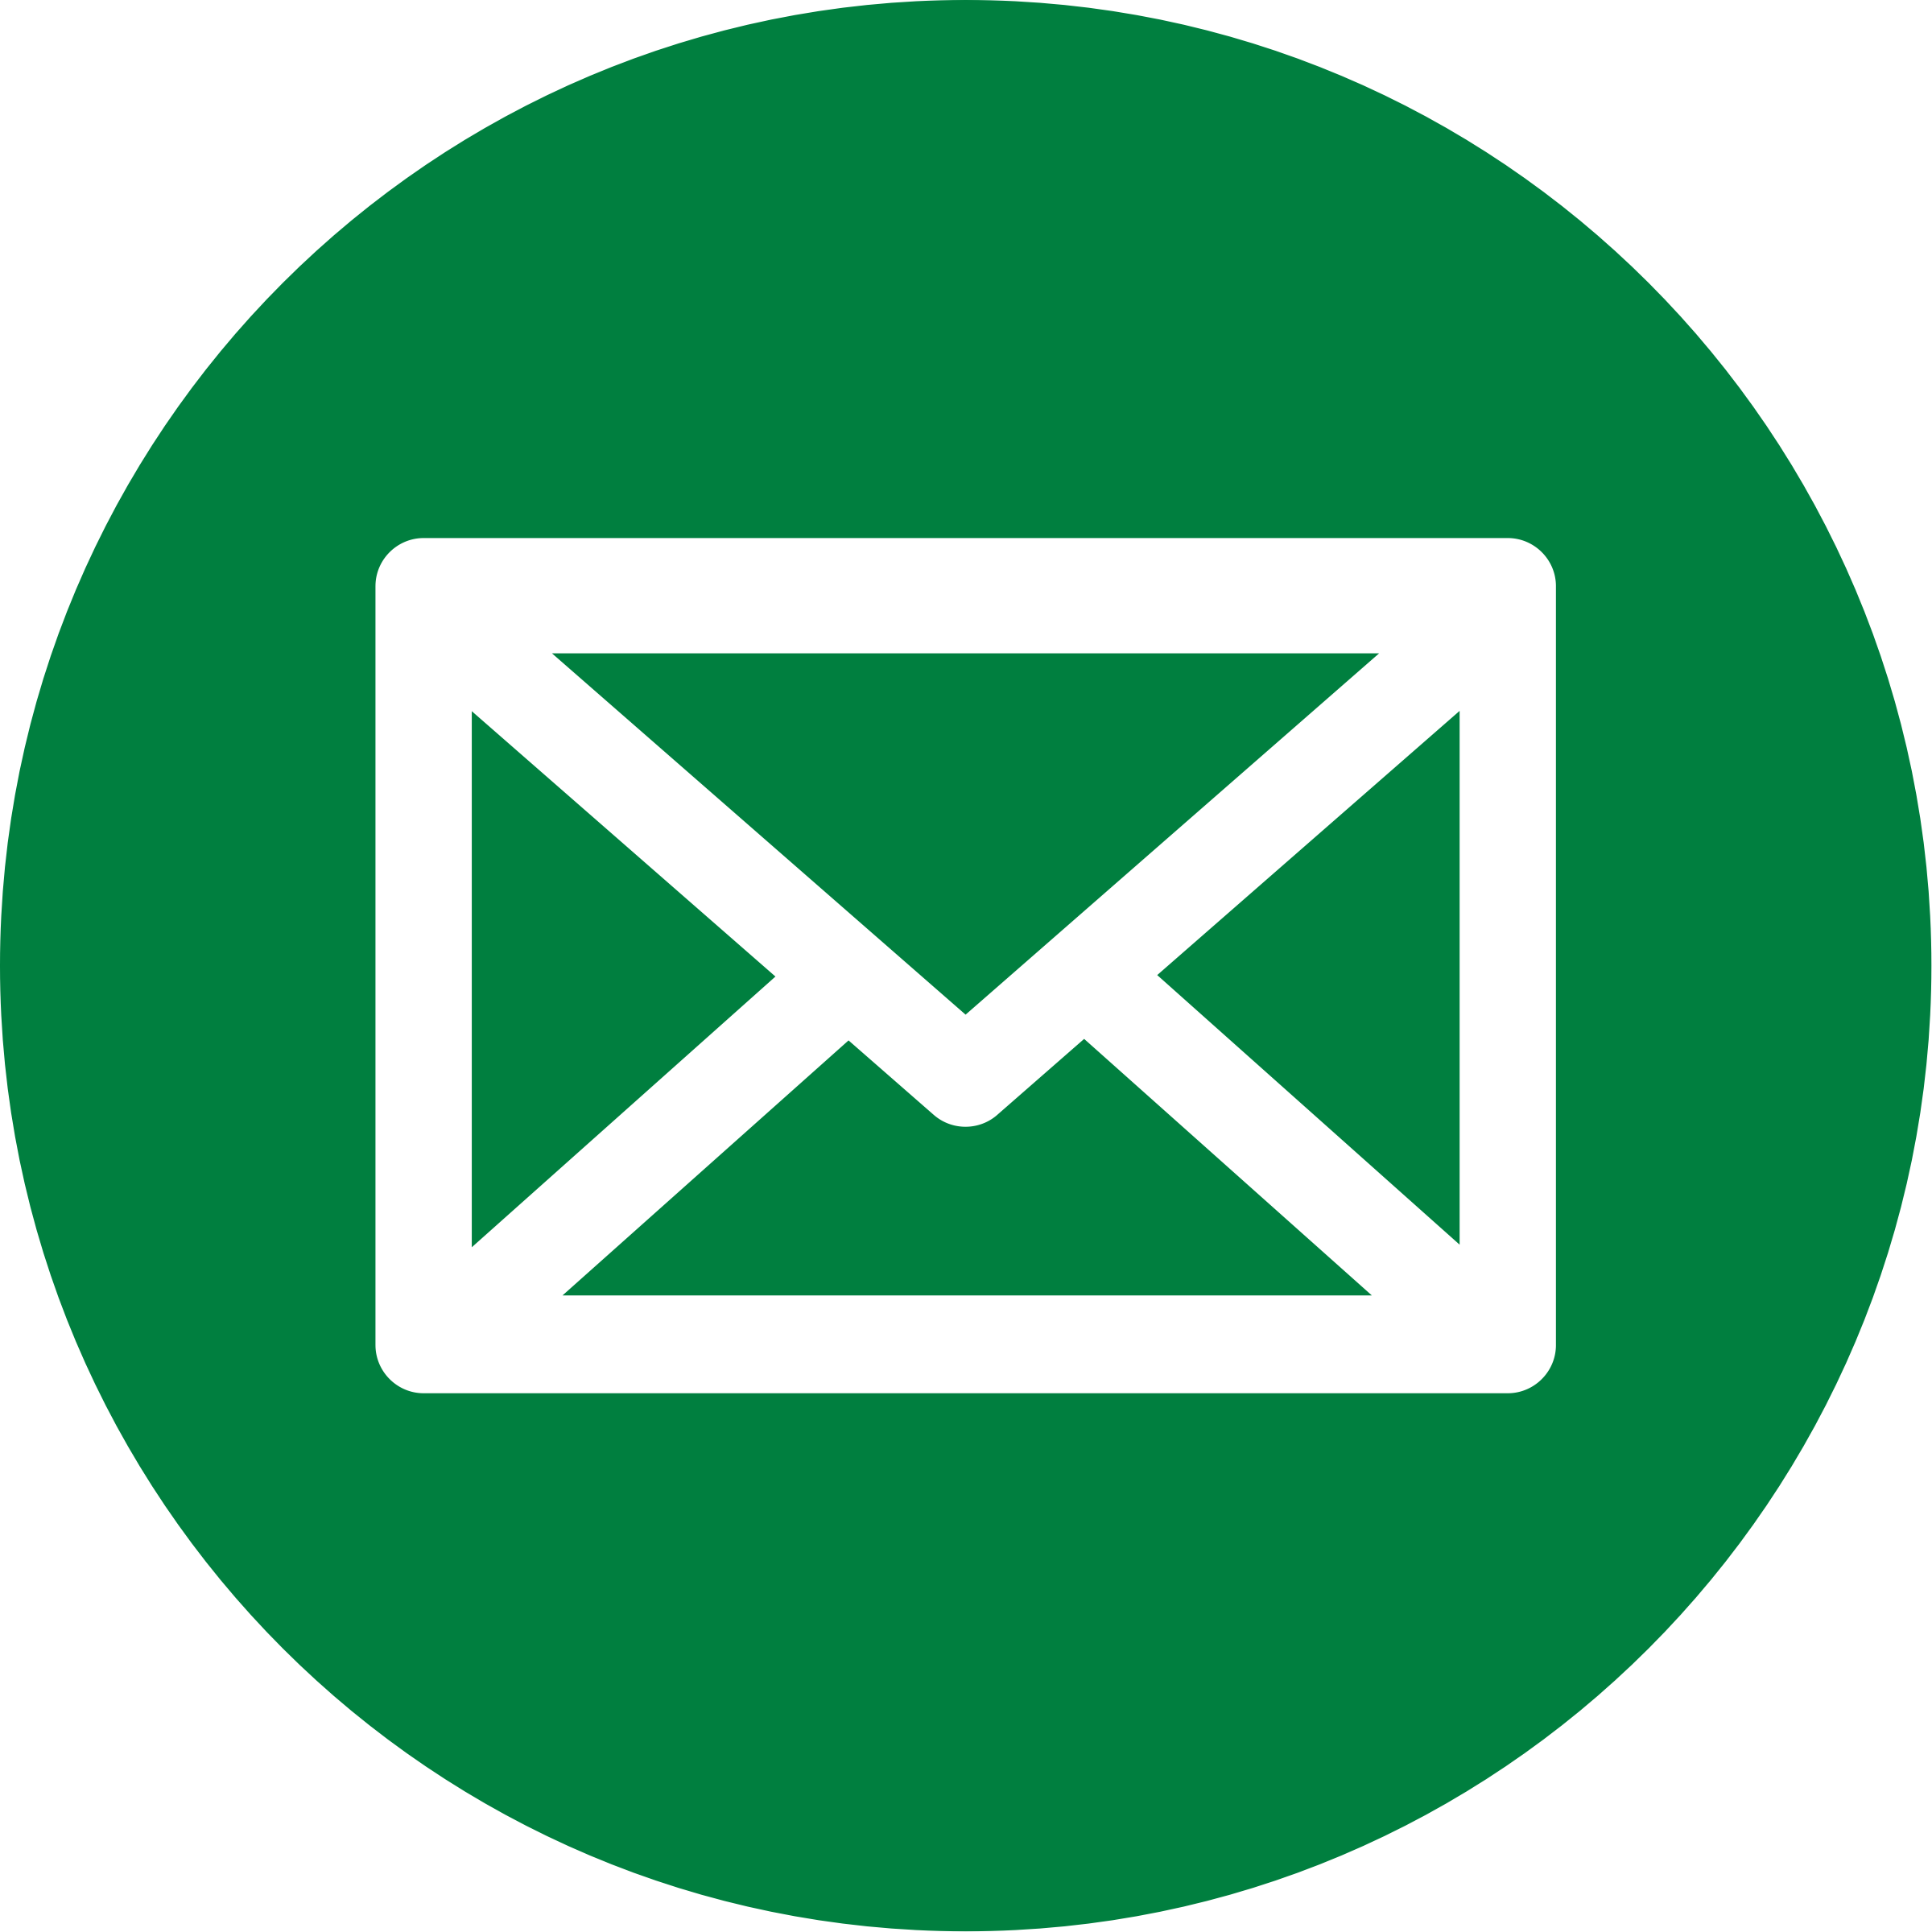 Email icon png green. Clipart mail big image